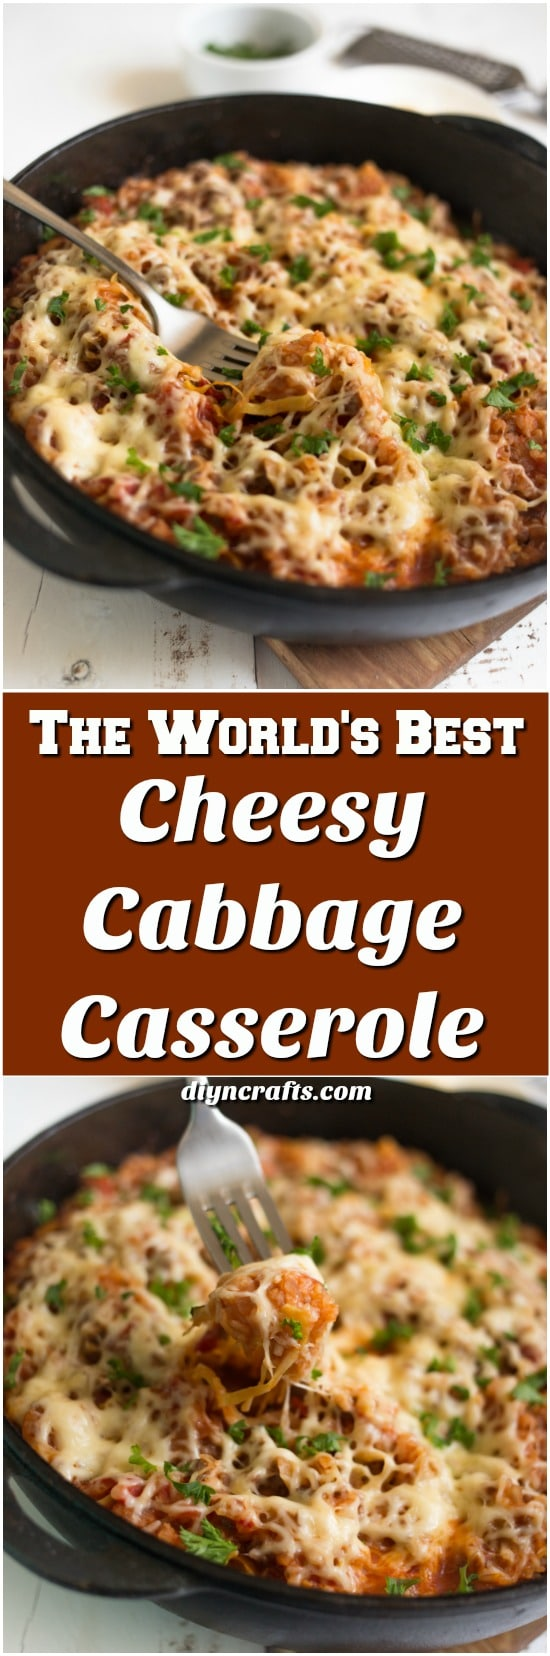 The World's Best Cheesy Cabbage Casserole That Will Leave You Drooling